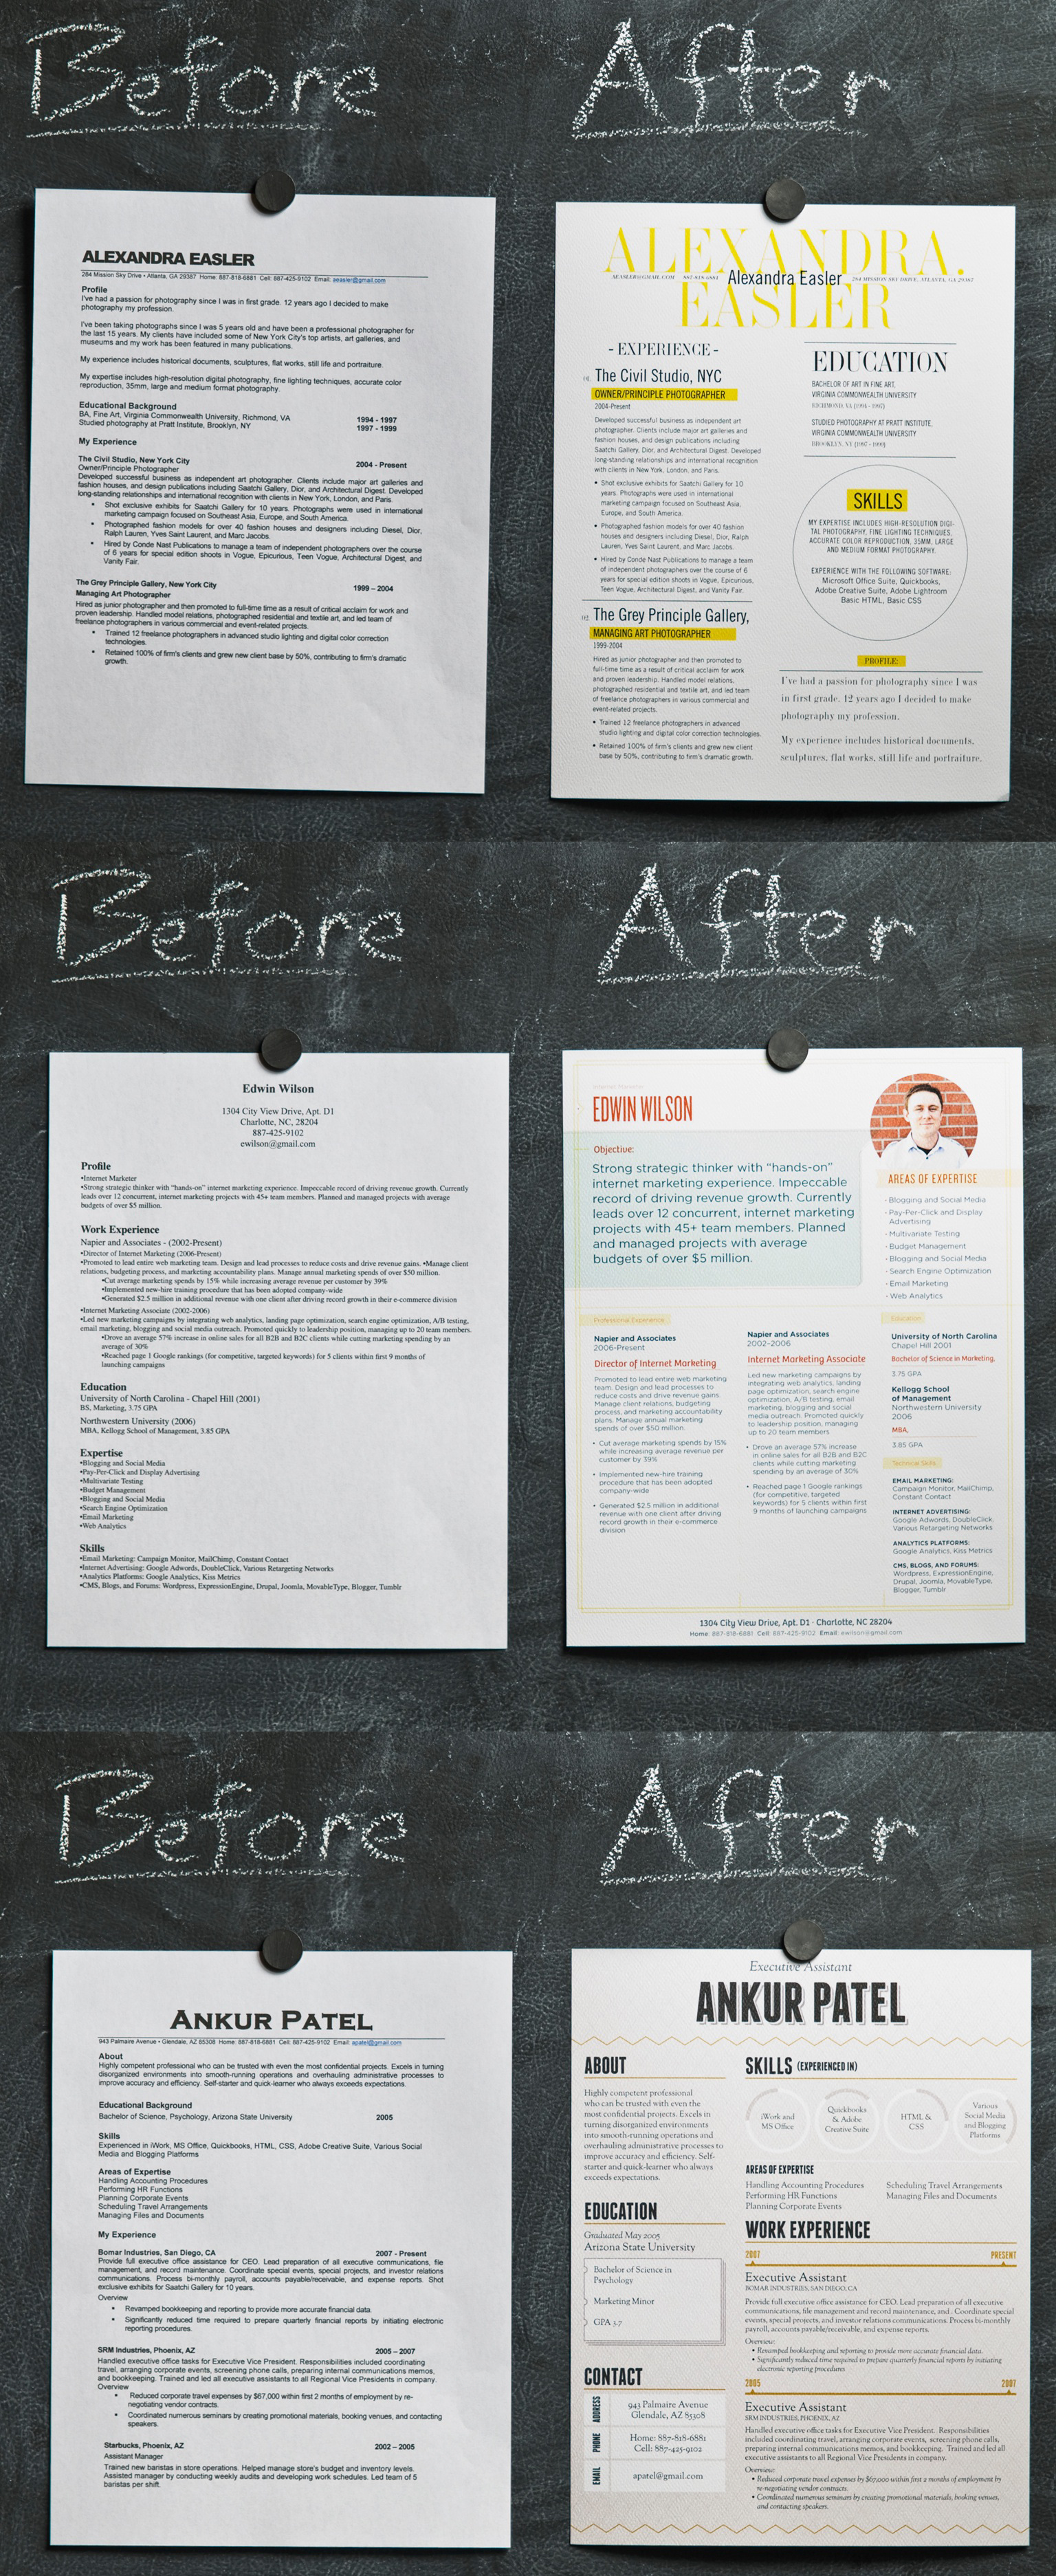 How To Make Your Resume Stand Out #4